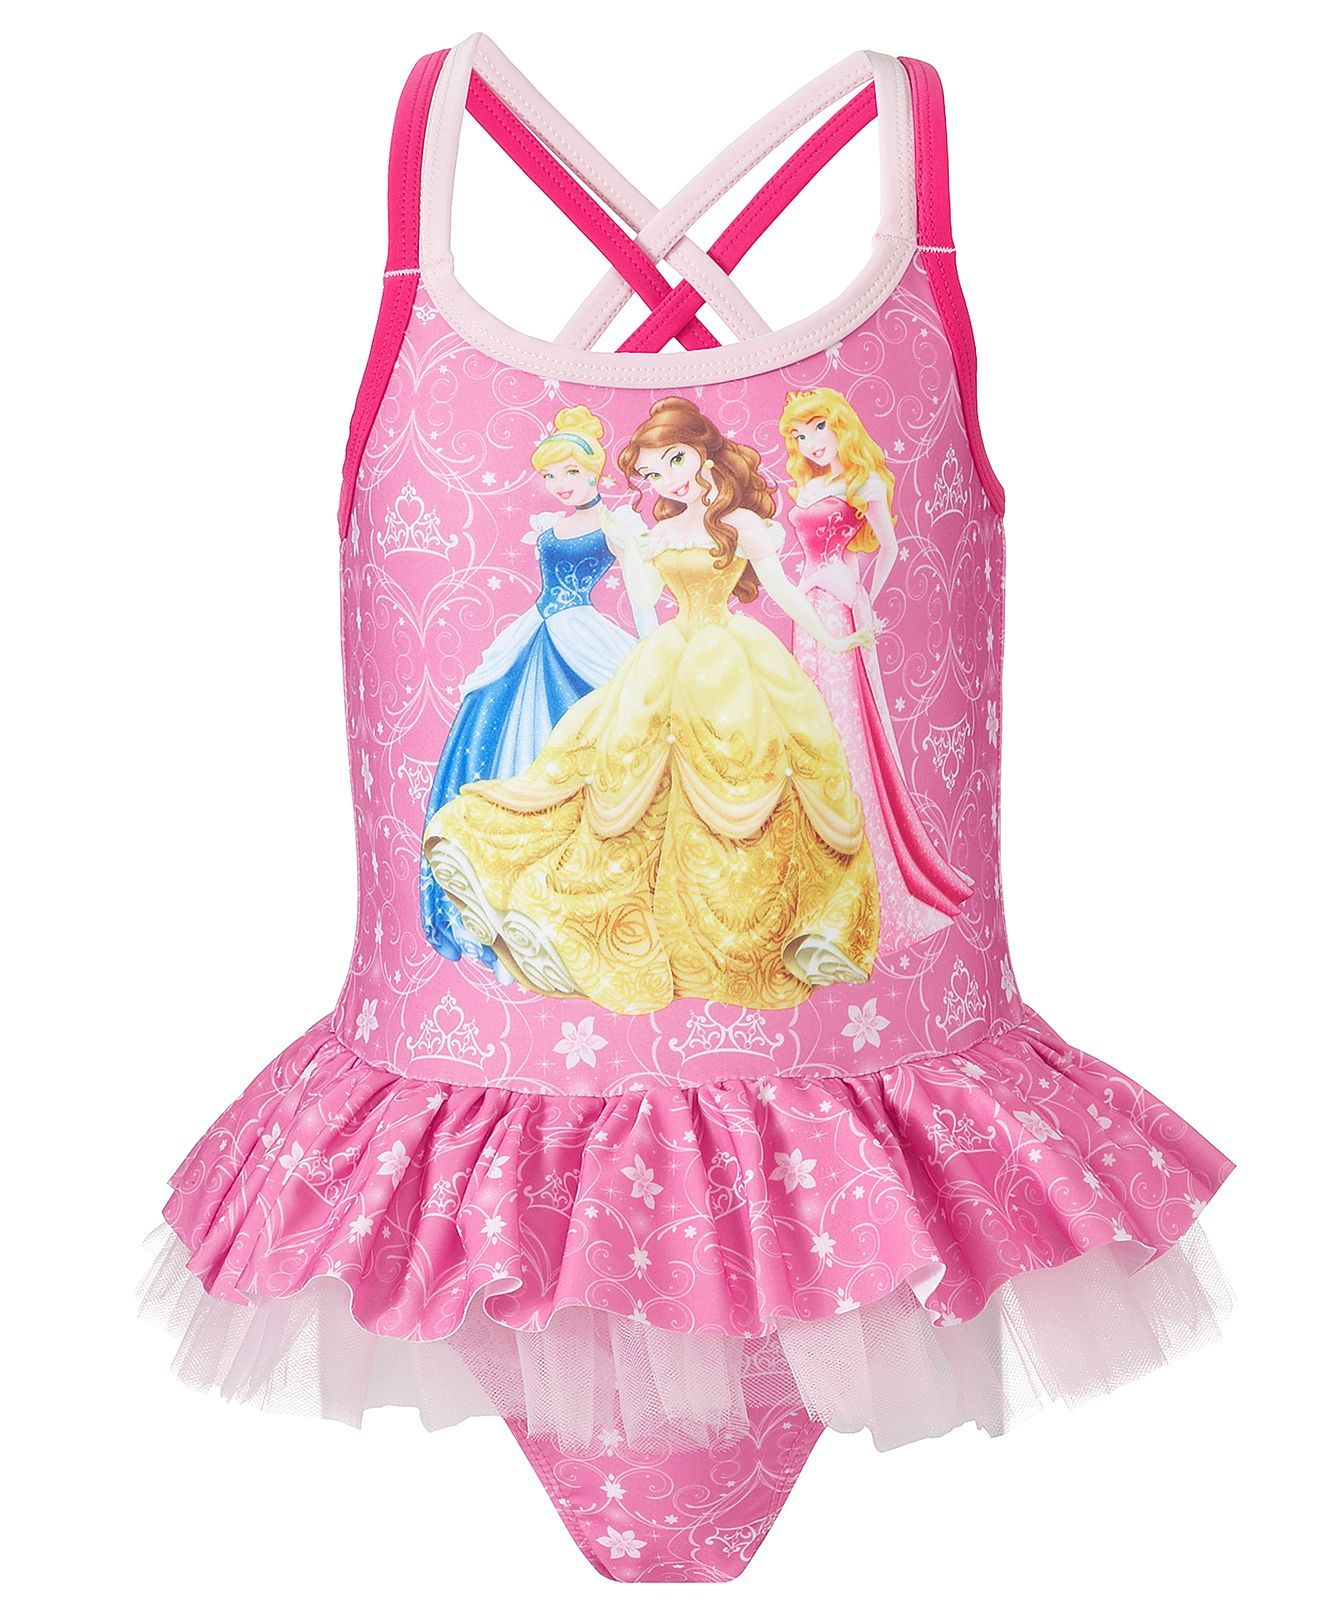 f59715b0e5 Dream Wave Kids Swimwear, Toddler Girls Disney Princess One-Piece Swimsuit  - Kids Girls 2-6X - Macy's